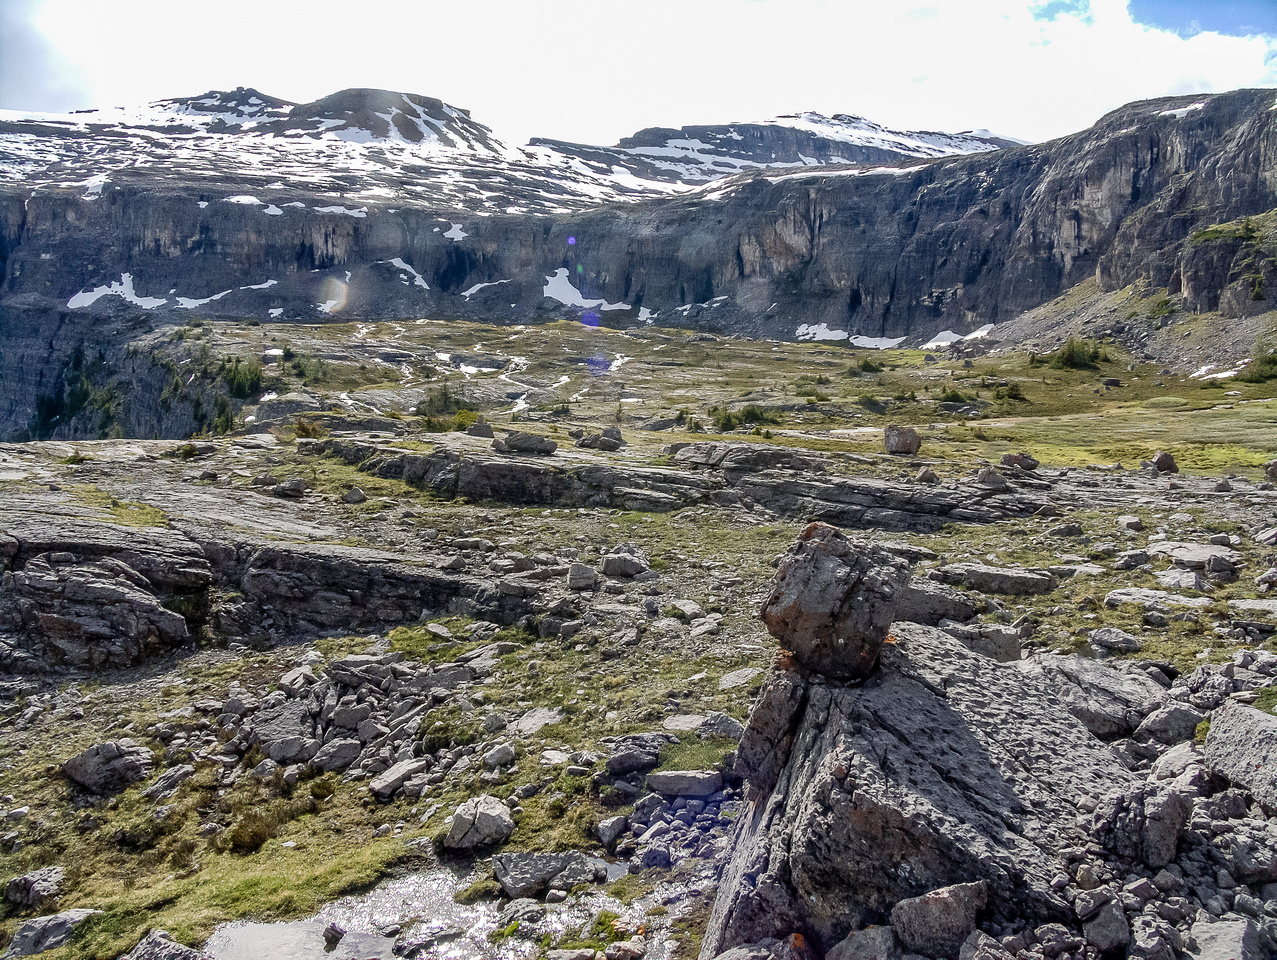 The entire second plateau from the 'bump' on Helena's slope. The ascent through the cliff band is on the far left side.